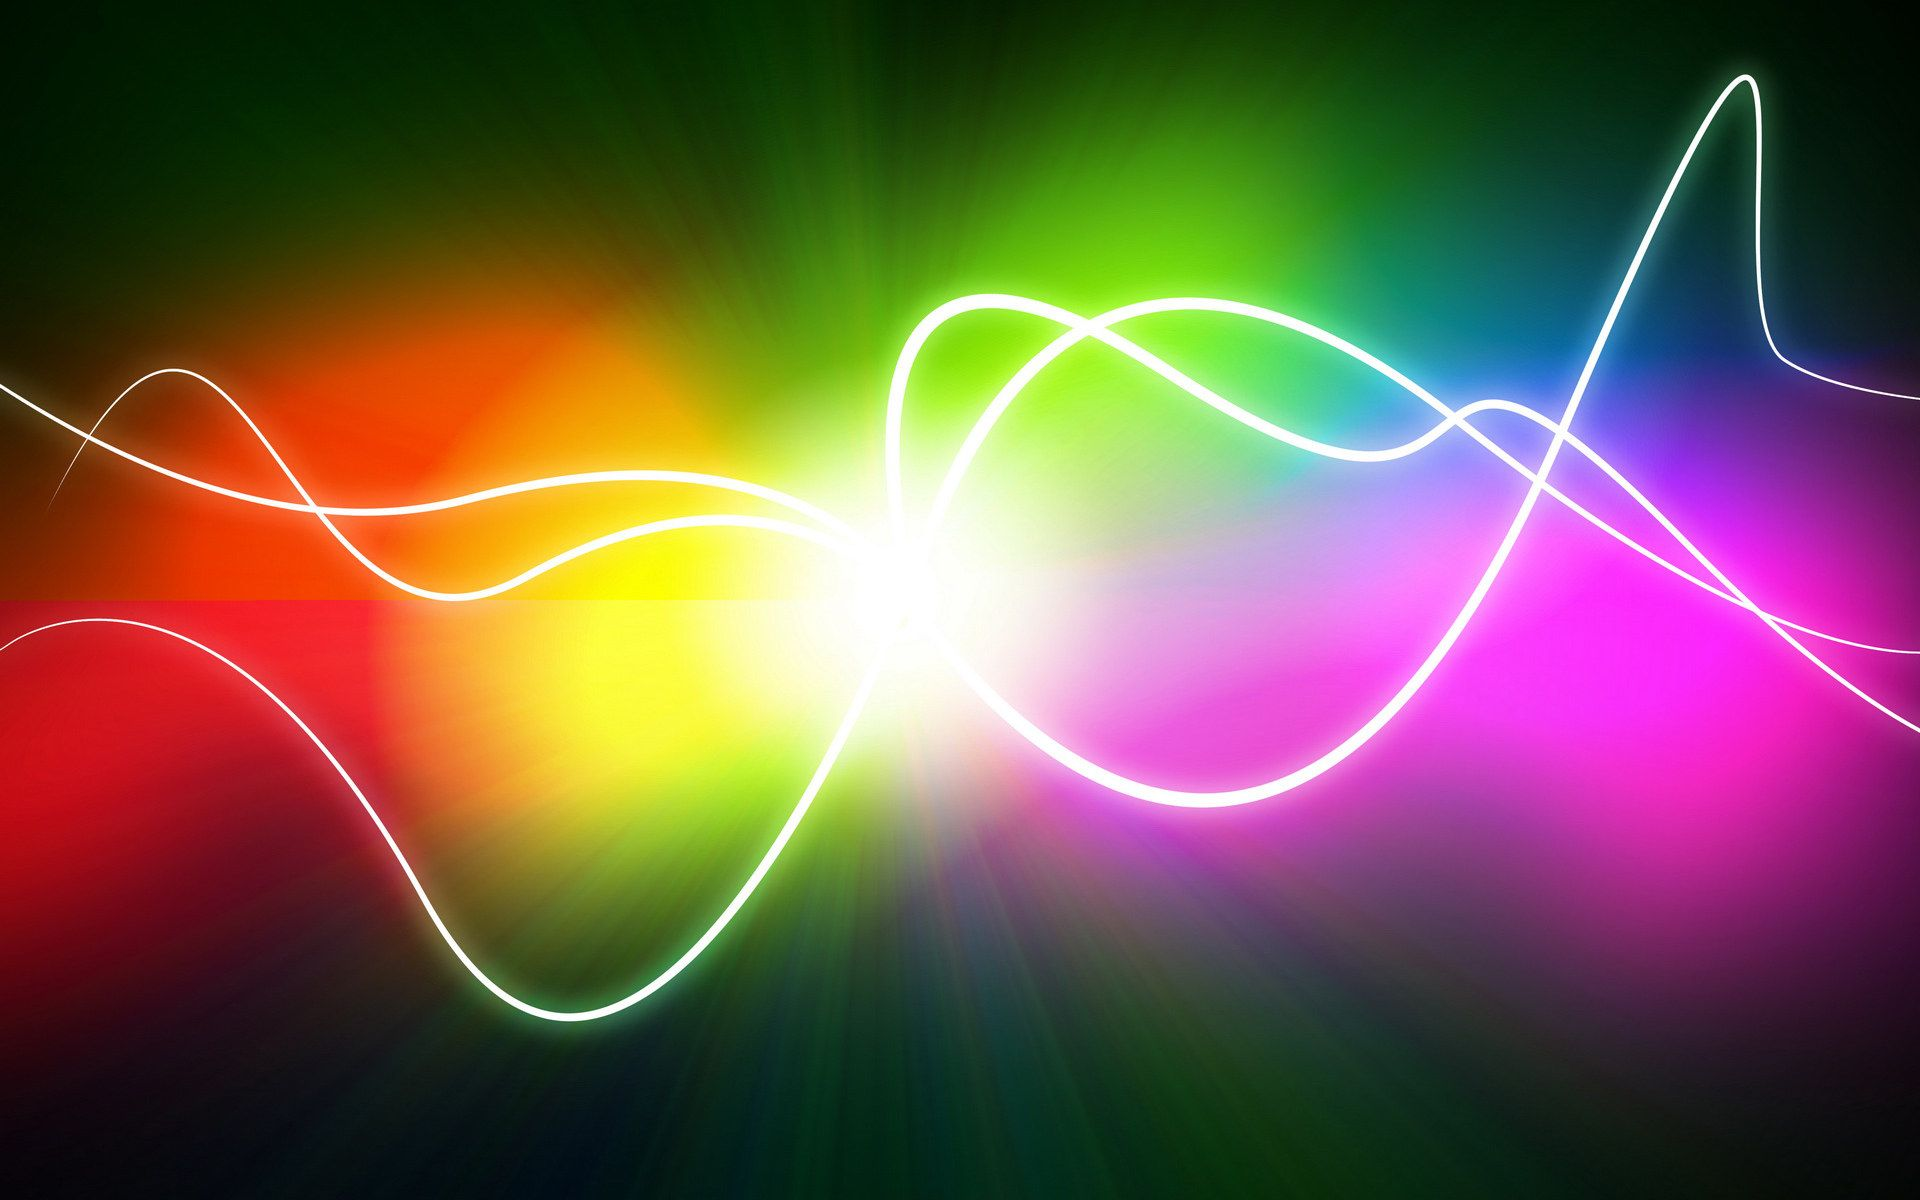 Colorful background of high-definition 17774 - Background color theme - Colorful wallpaper